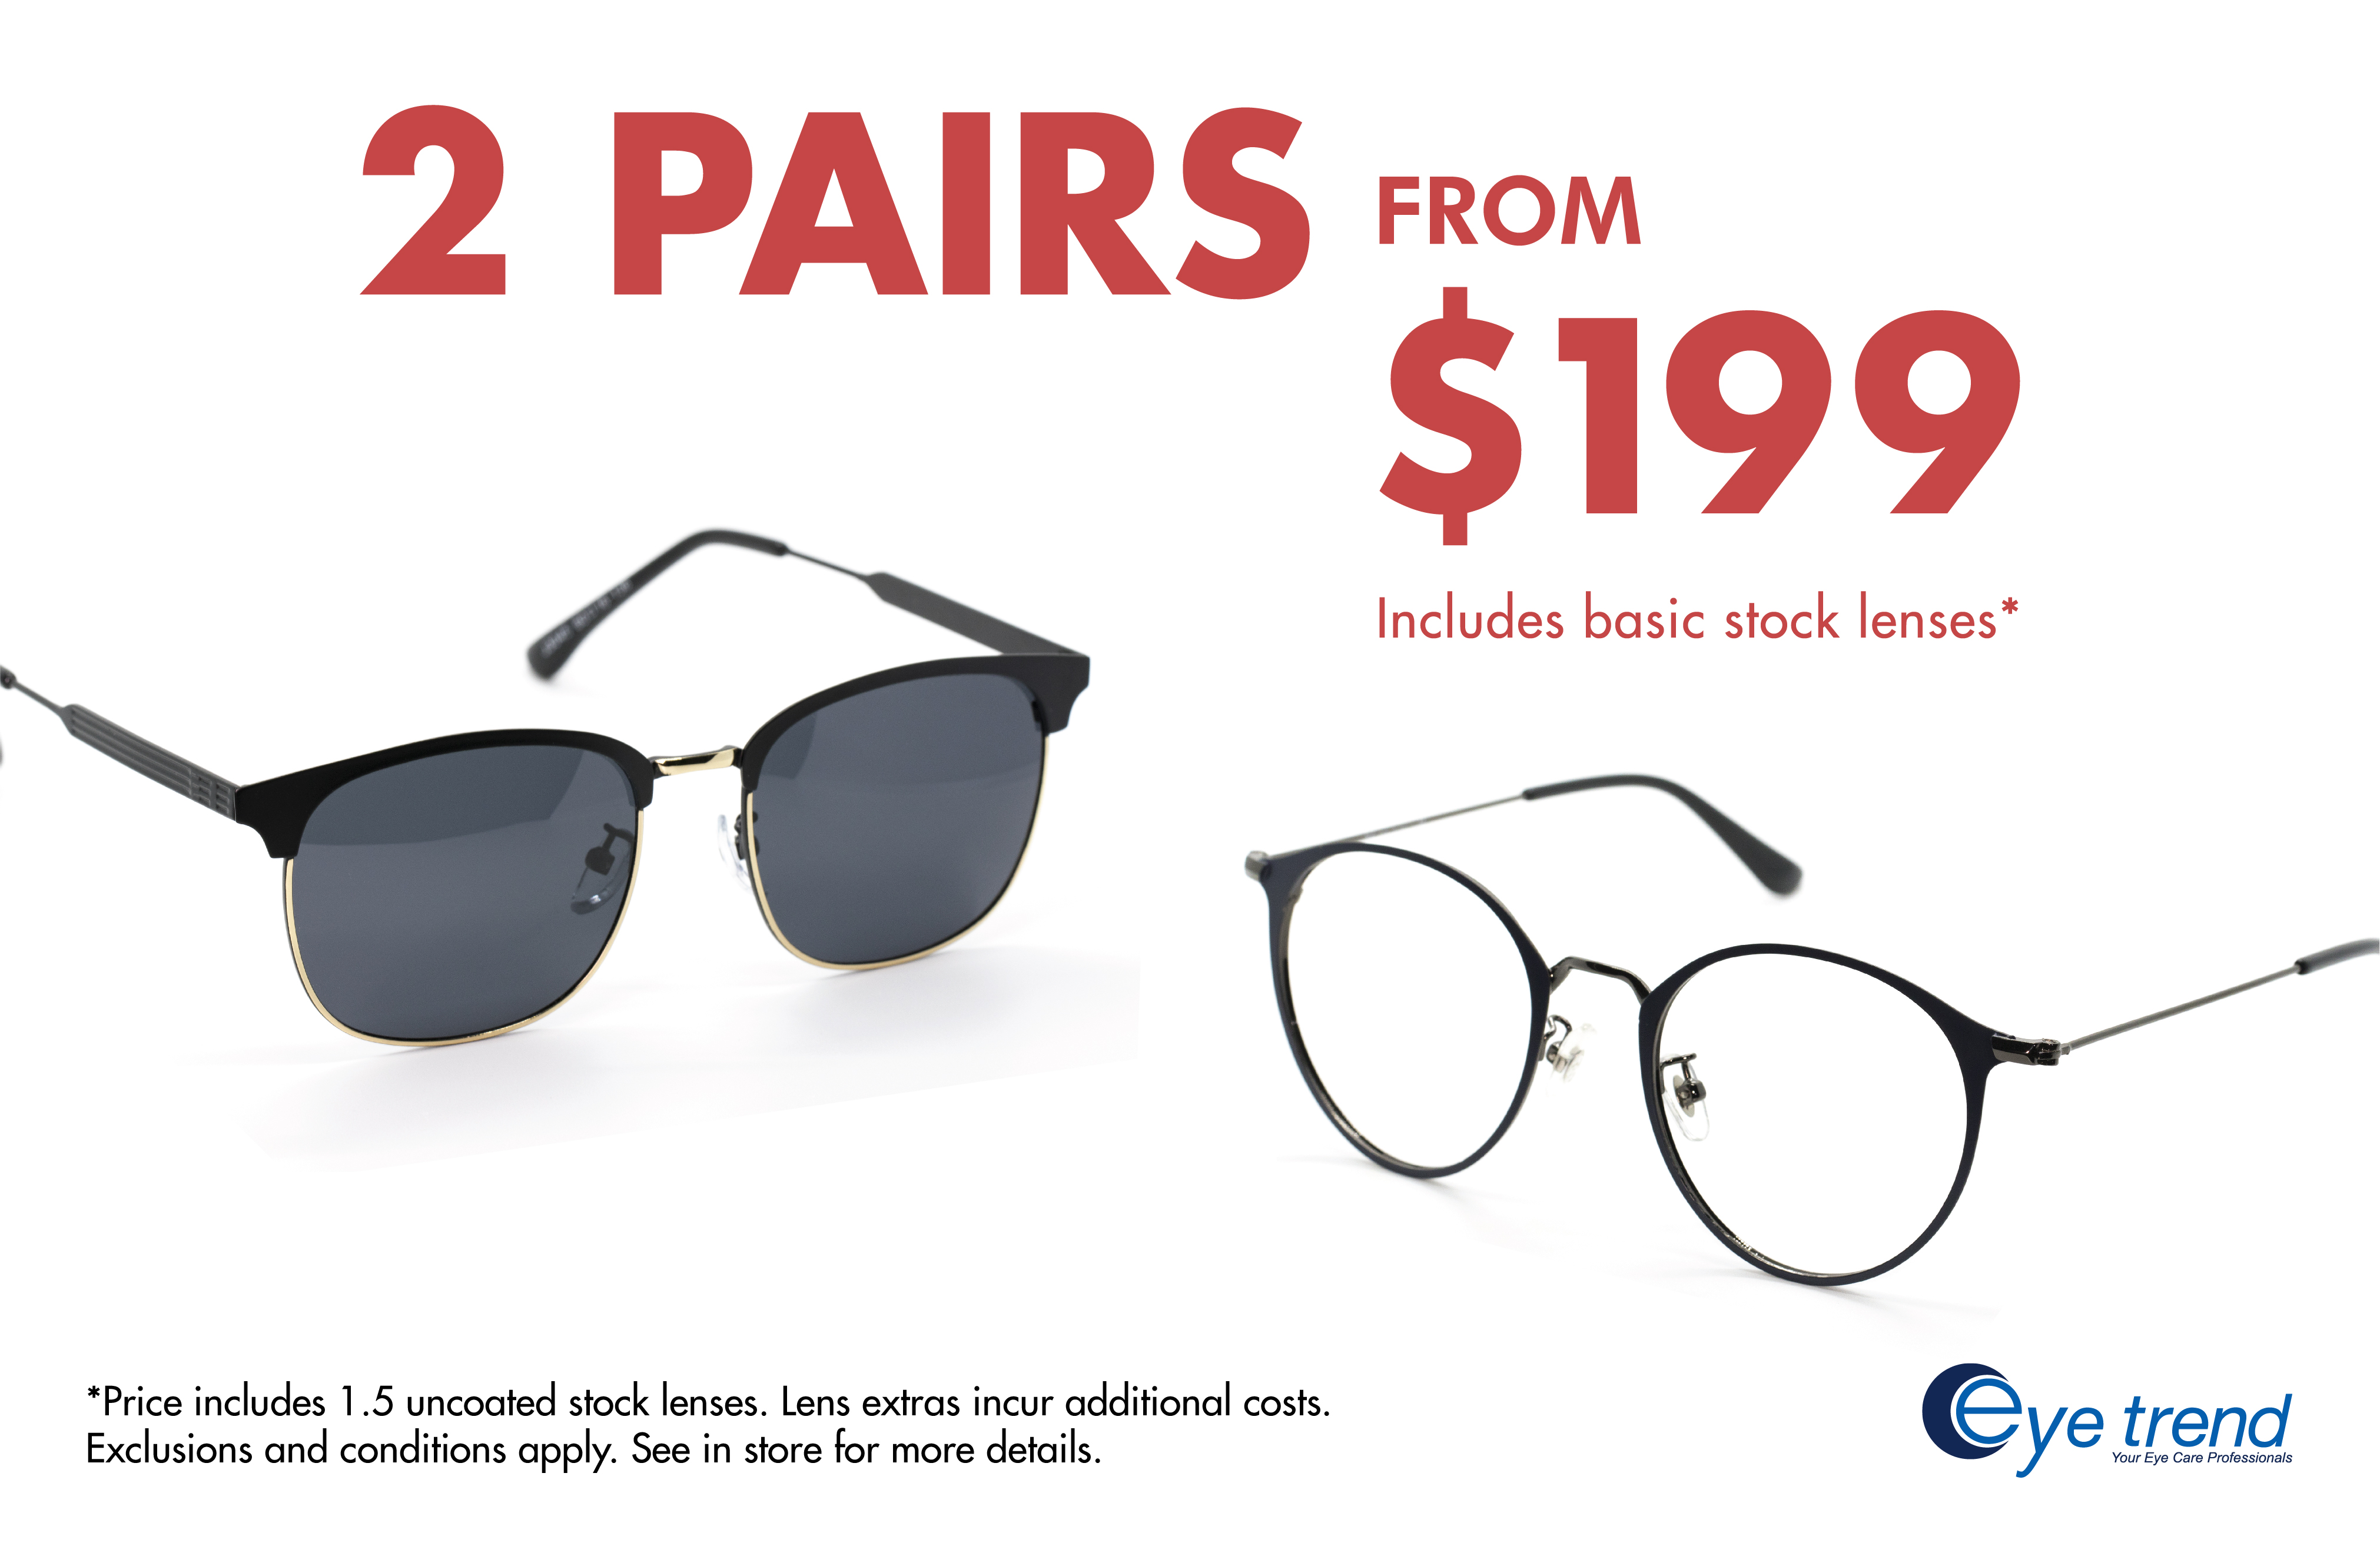 Eye Trend's '2 pairs from $199' Offer